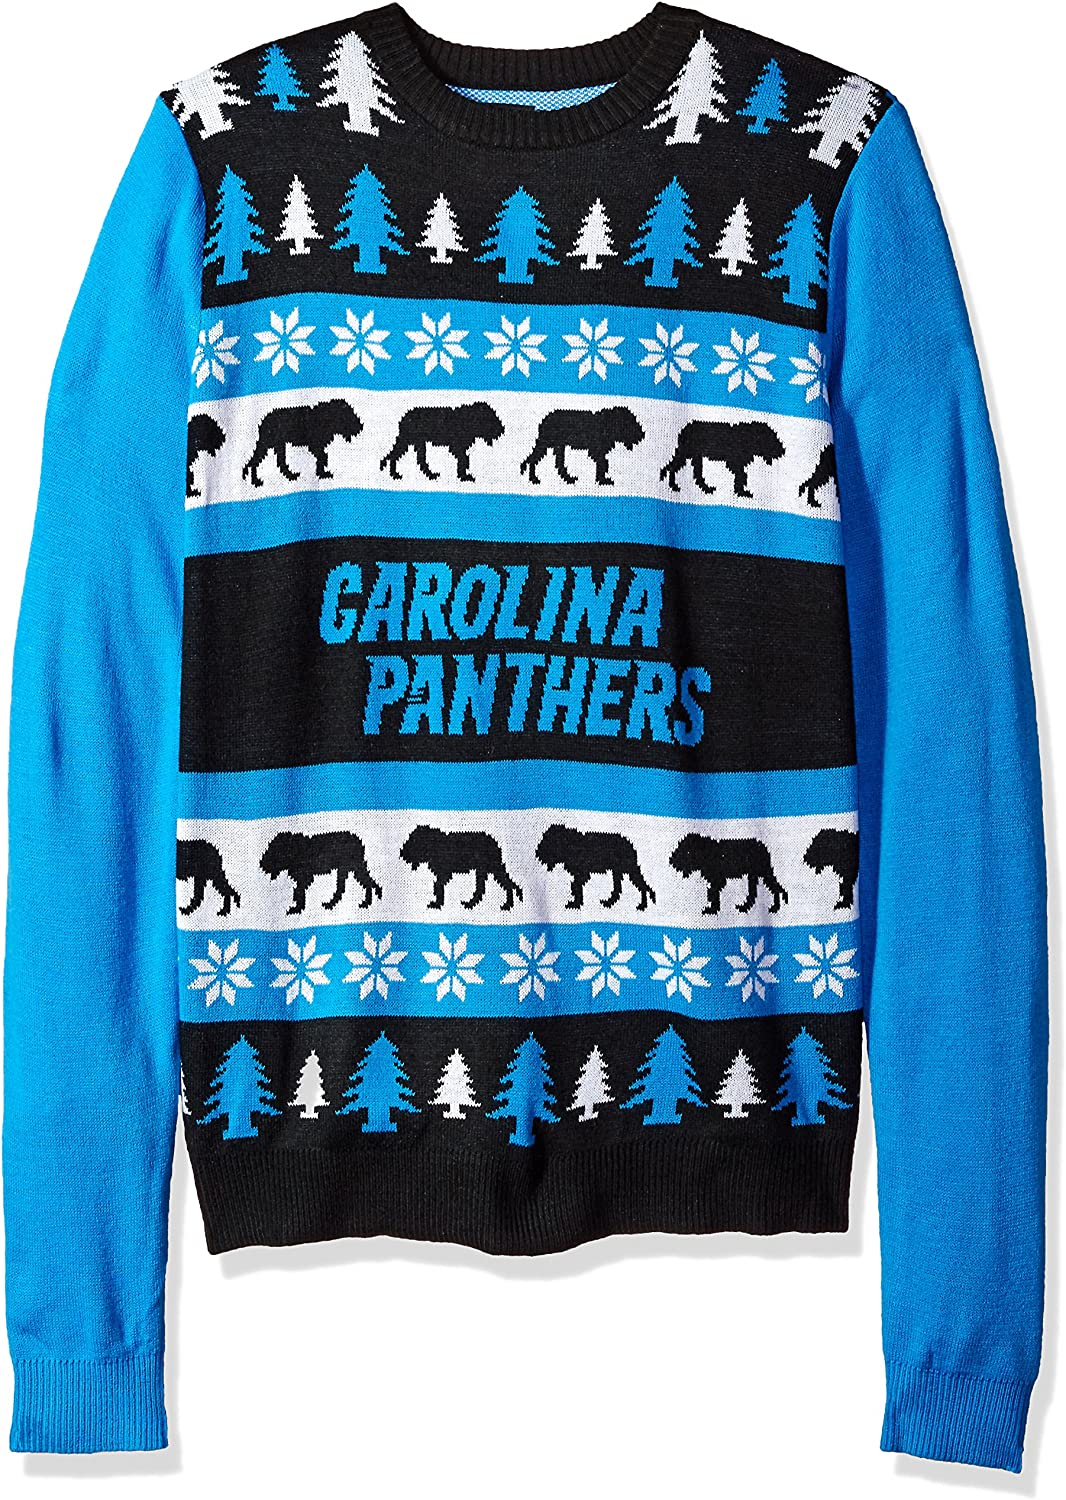 KLEW NFL Carolina Panthers Busy Block Ugly Sweater, blueee, X-Large